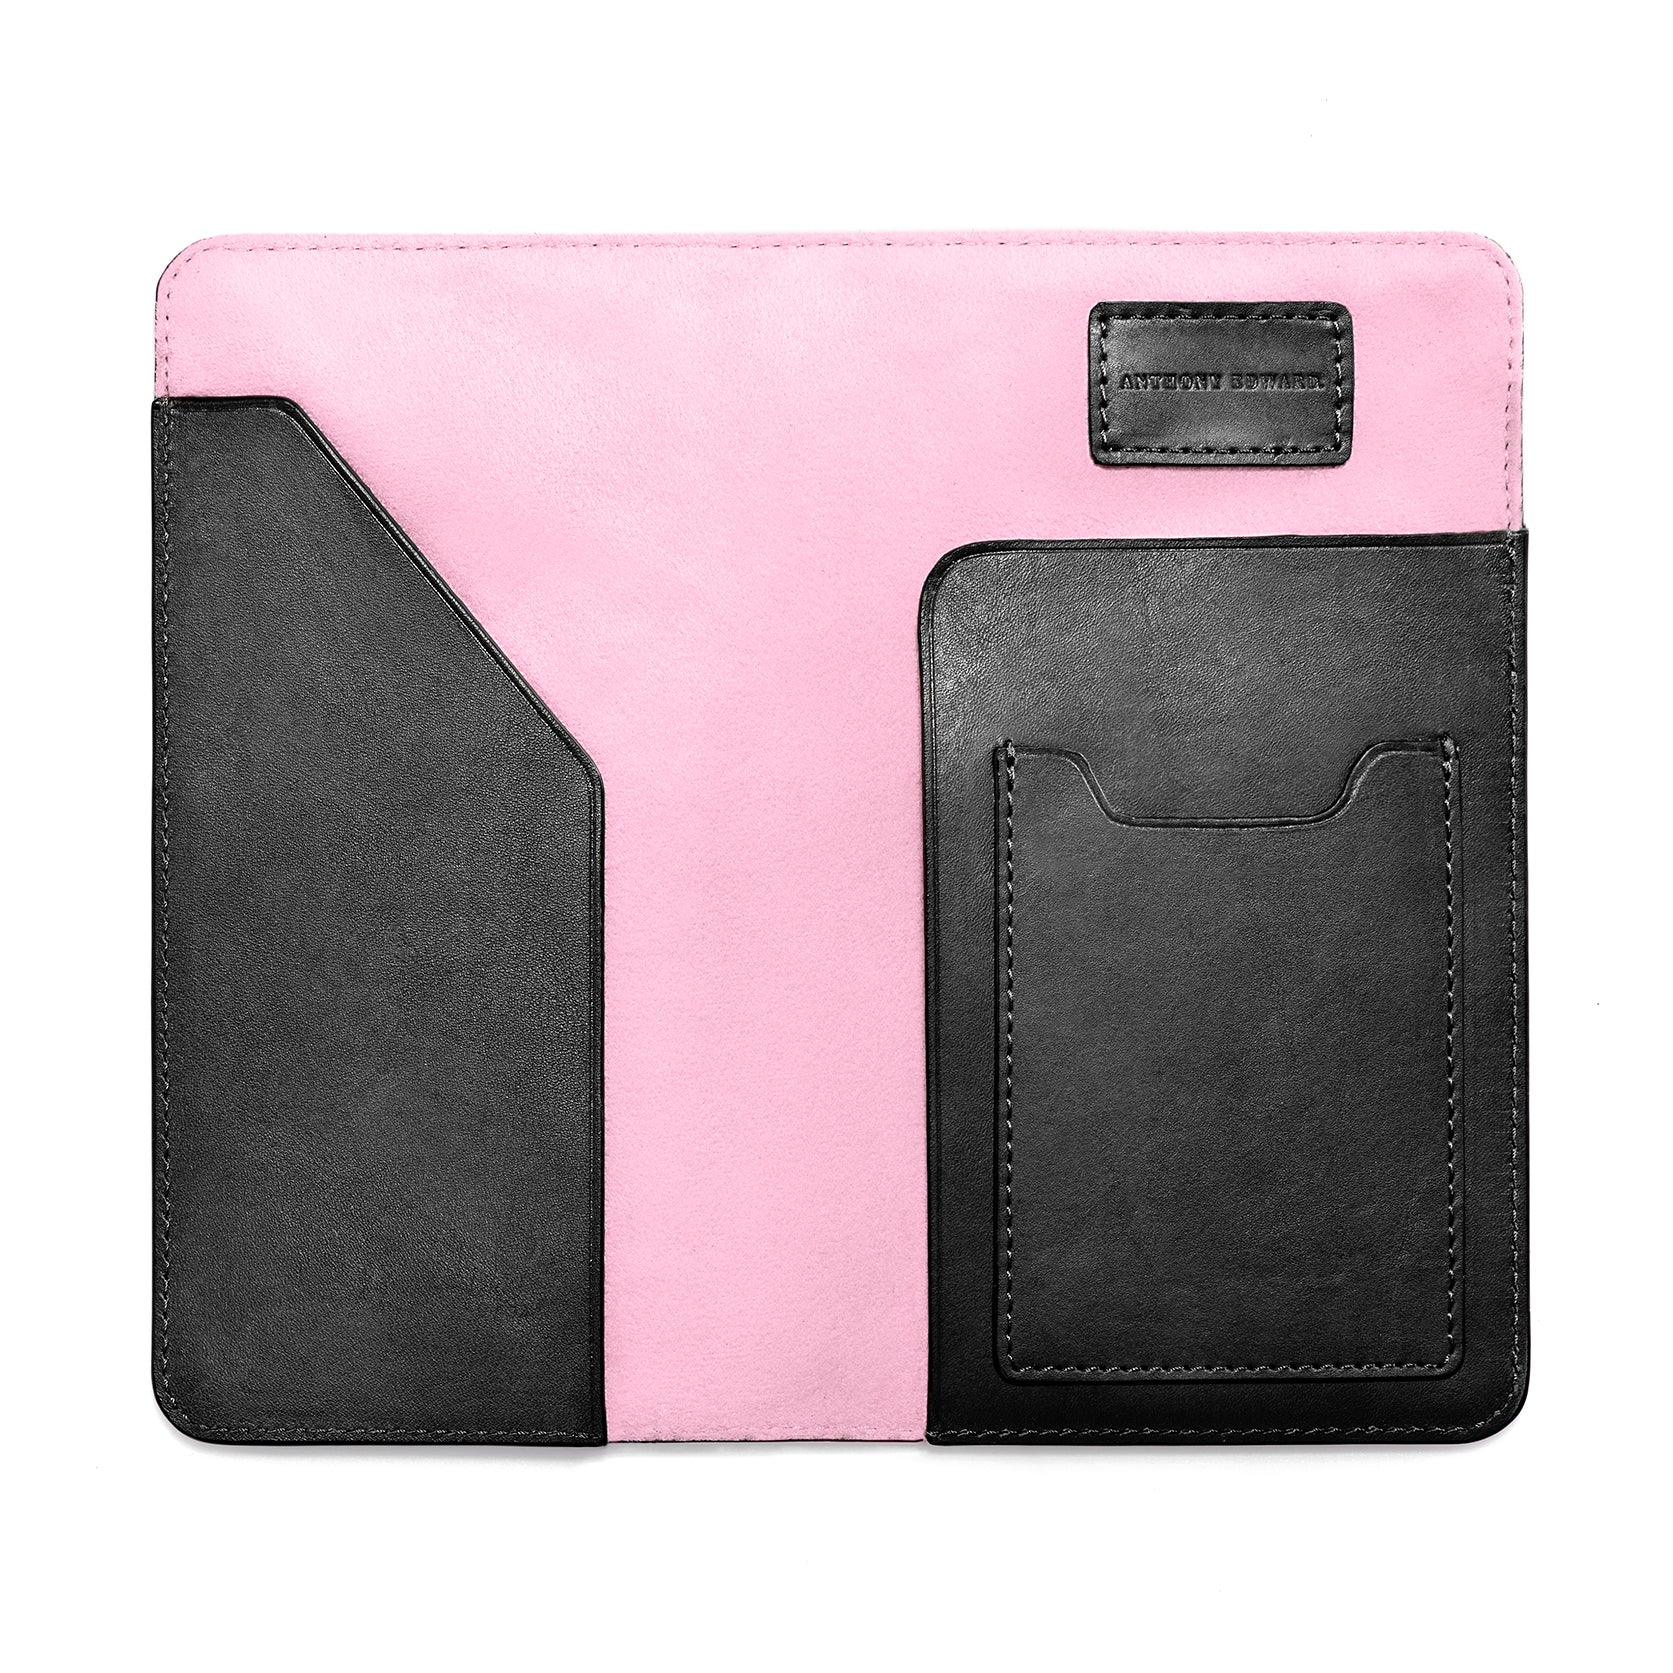 PASSPORT CASE BLACK CORAL PINK